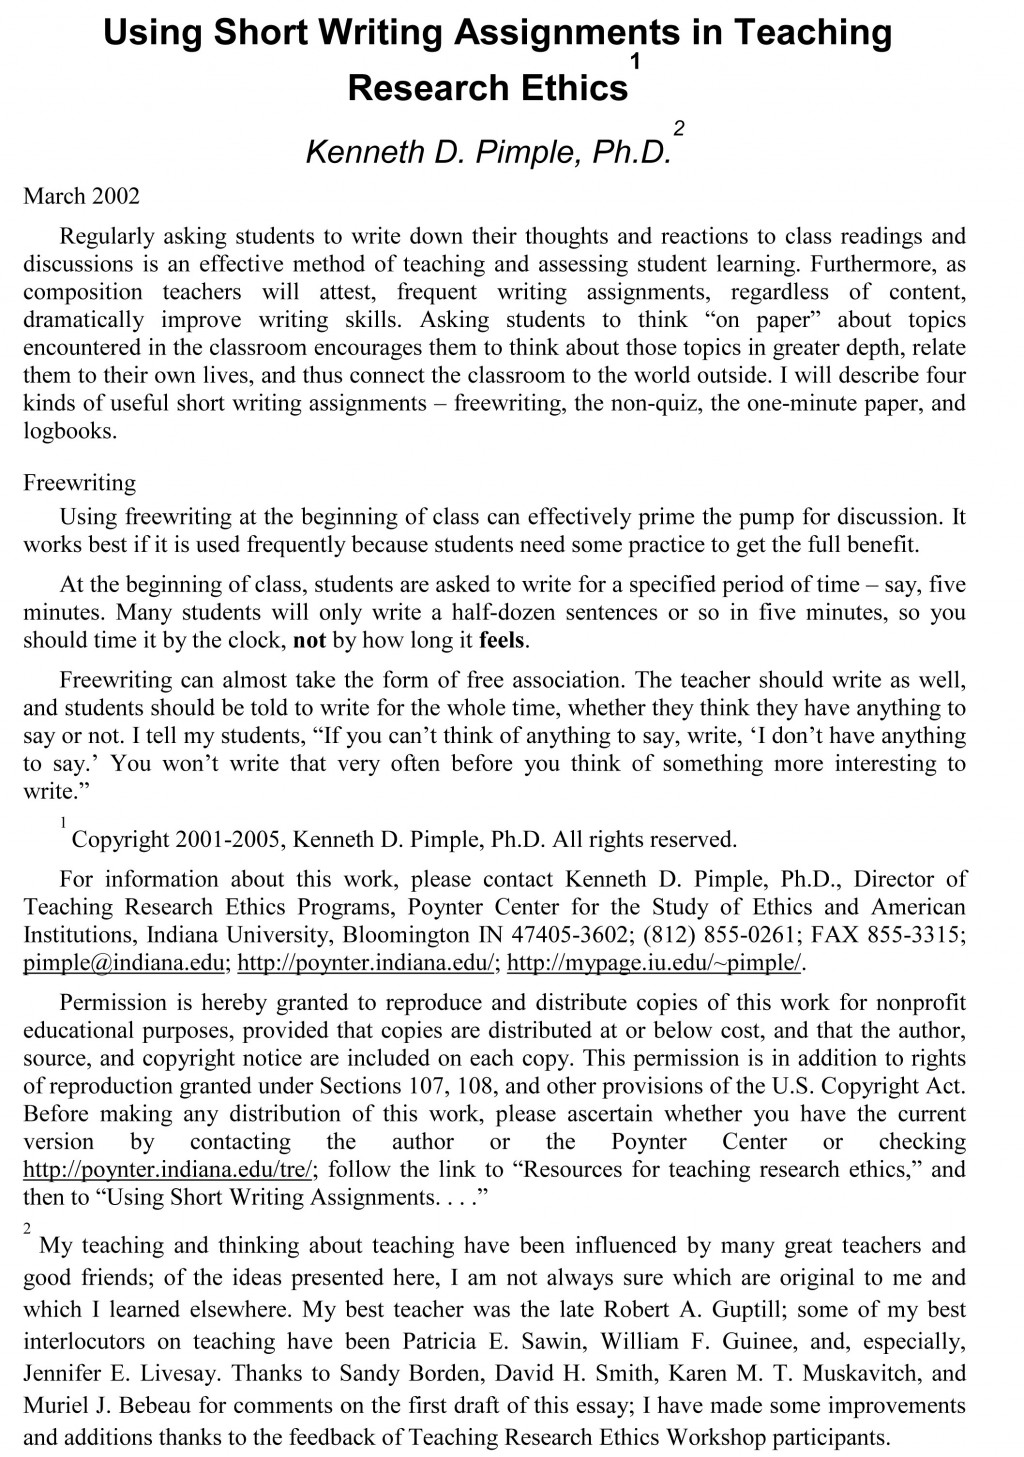 012 Essay Example Sample Teaching Remarkable Diversity Law School Uw Examples Medical Large